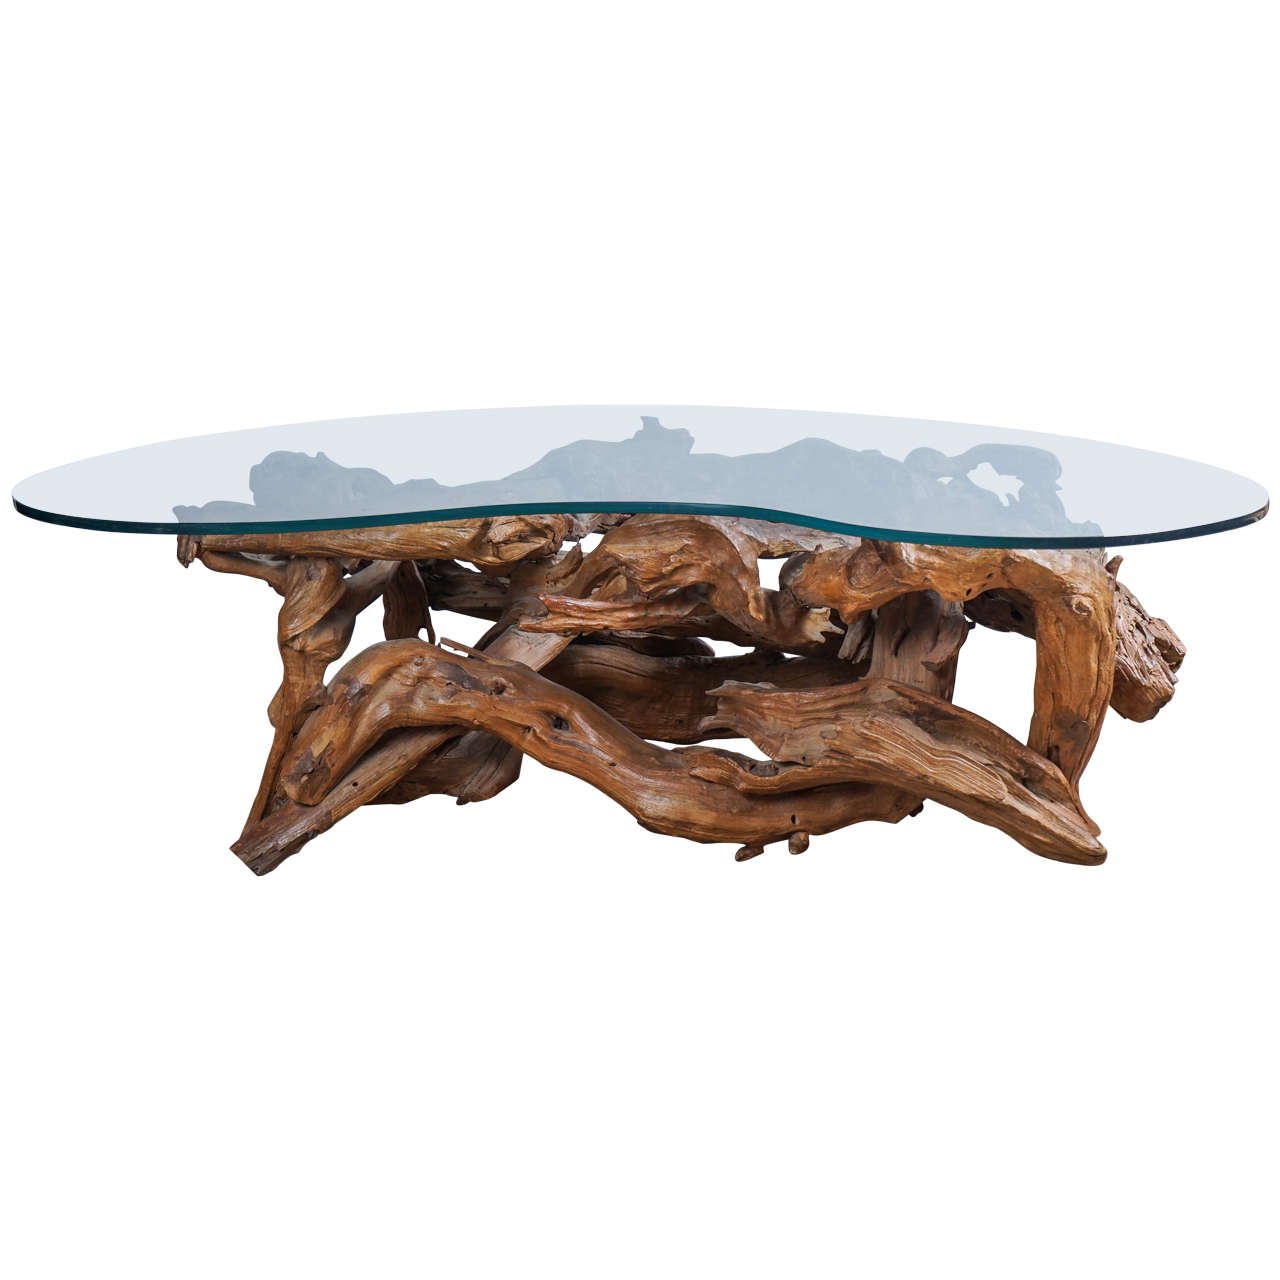 Root Coffee Table For Sale: Root Table With Glass Top For Sale At 1stdibs